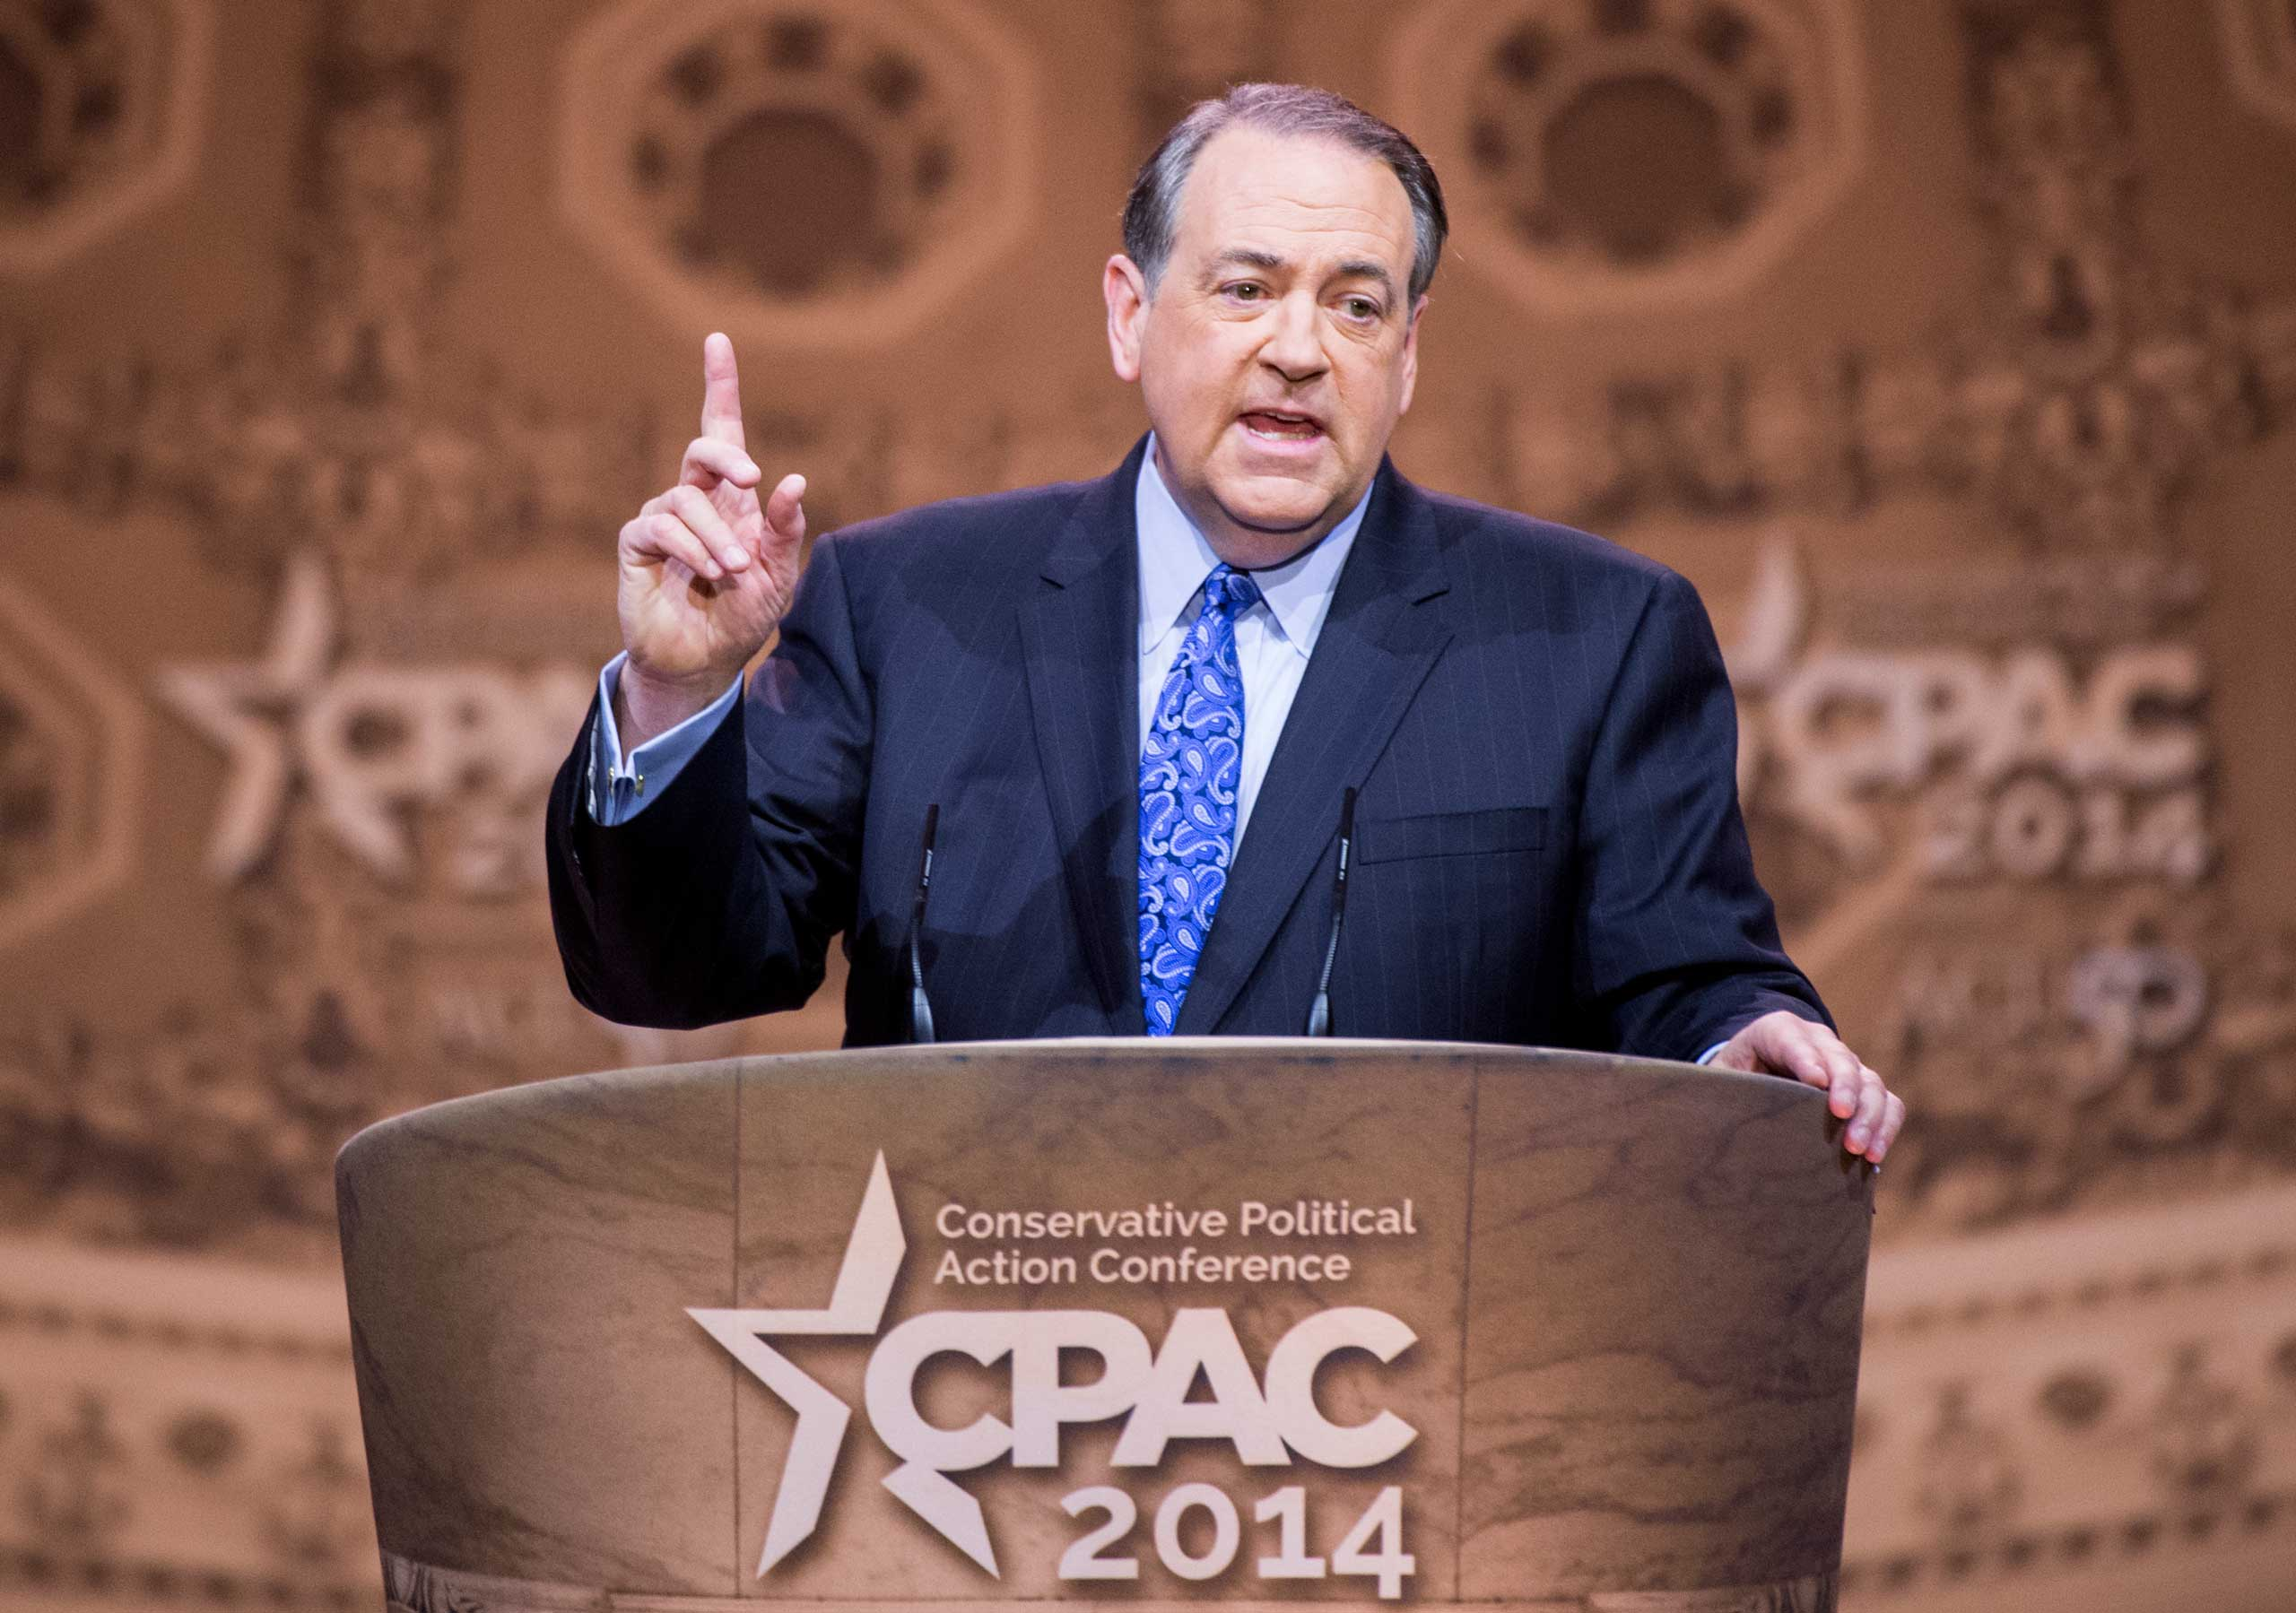 Former Arkansas Gov. Mike Huckabee speaks during the American Conservative Union's Conservative Political Action Conference (CPAC) at National Harbor, Md., March 7, 2014.